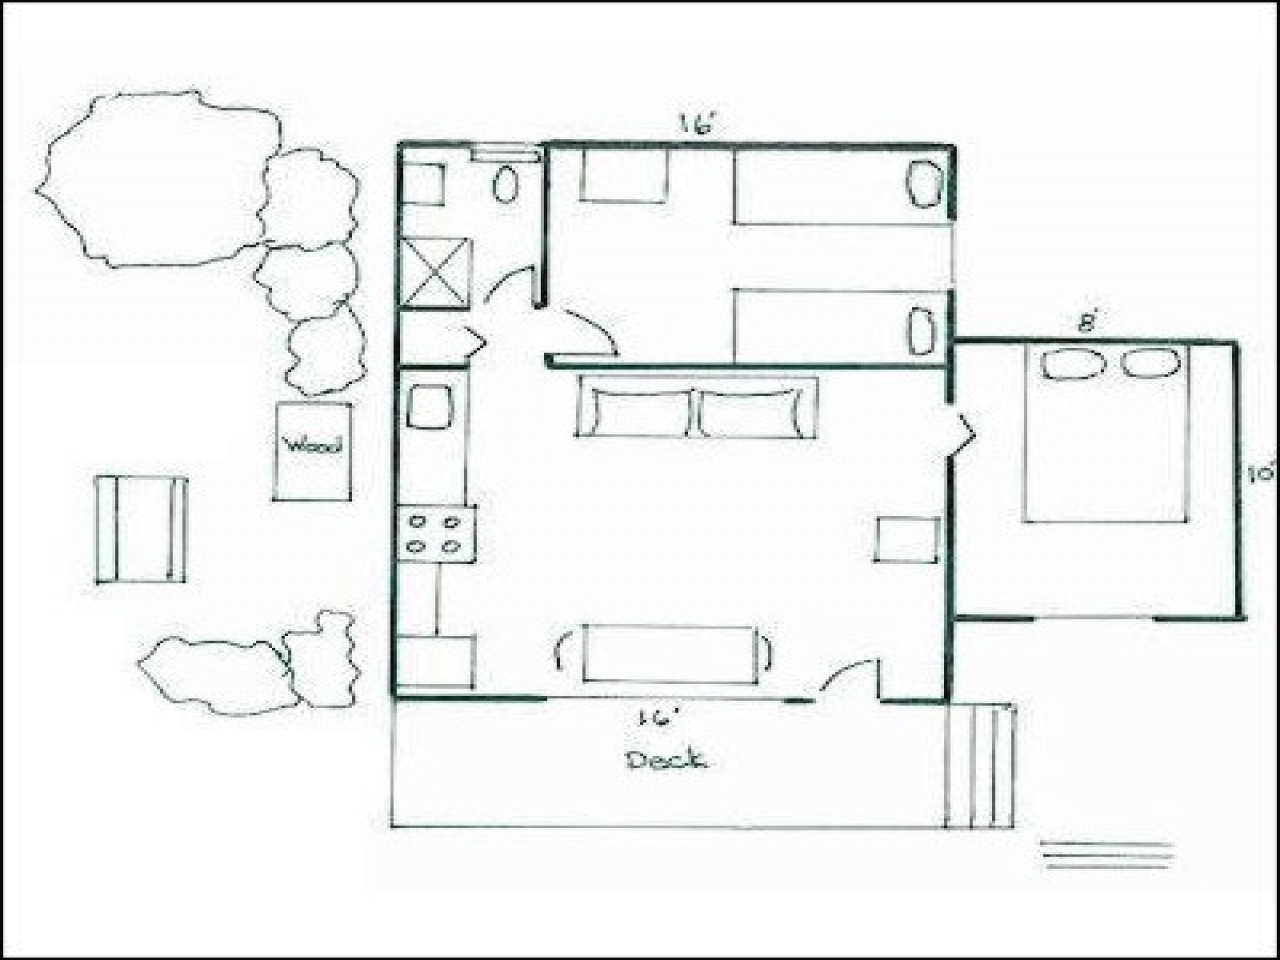 Small 2 bedroom cottage plans 2 br cottage plans two for Two bedroom bungalow plans